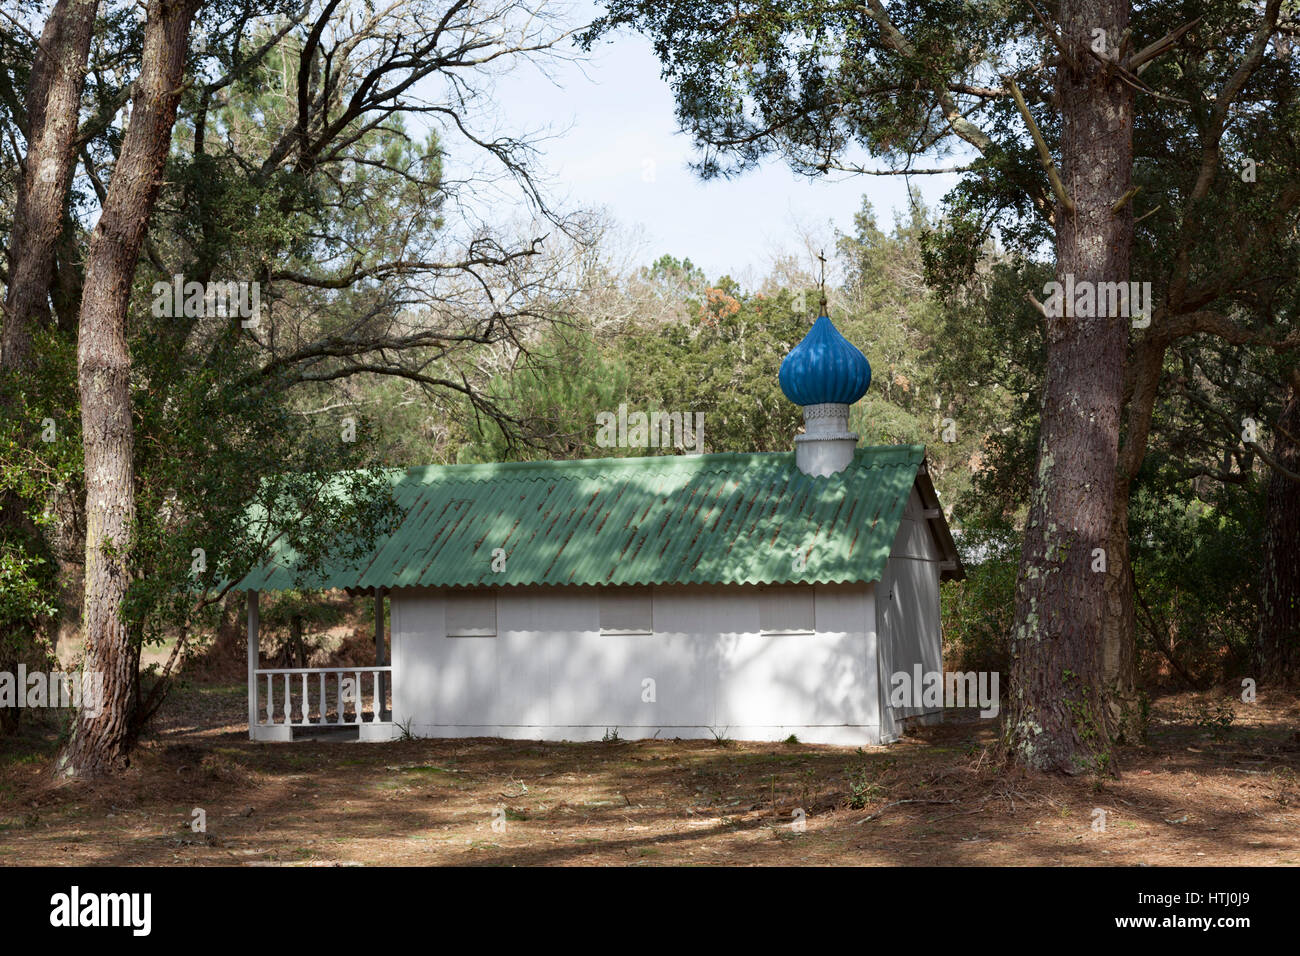 The Orthodox onion-shaped dome chapel of the Hossegor 'Sokol' camp site used by the Russian diaspora descendants - Stock Image